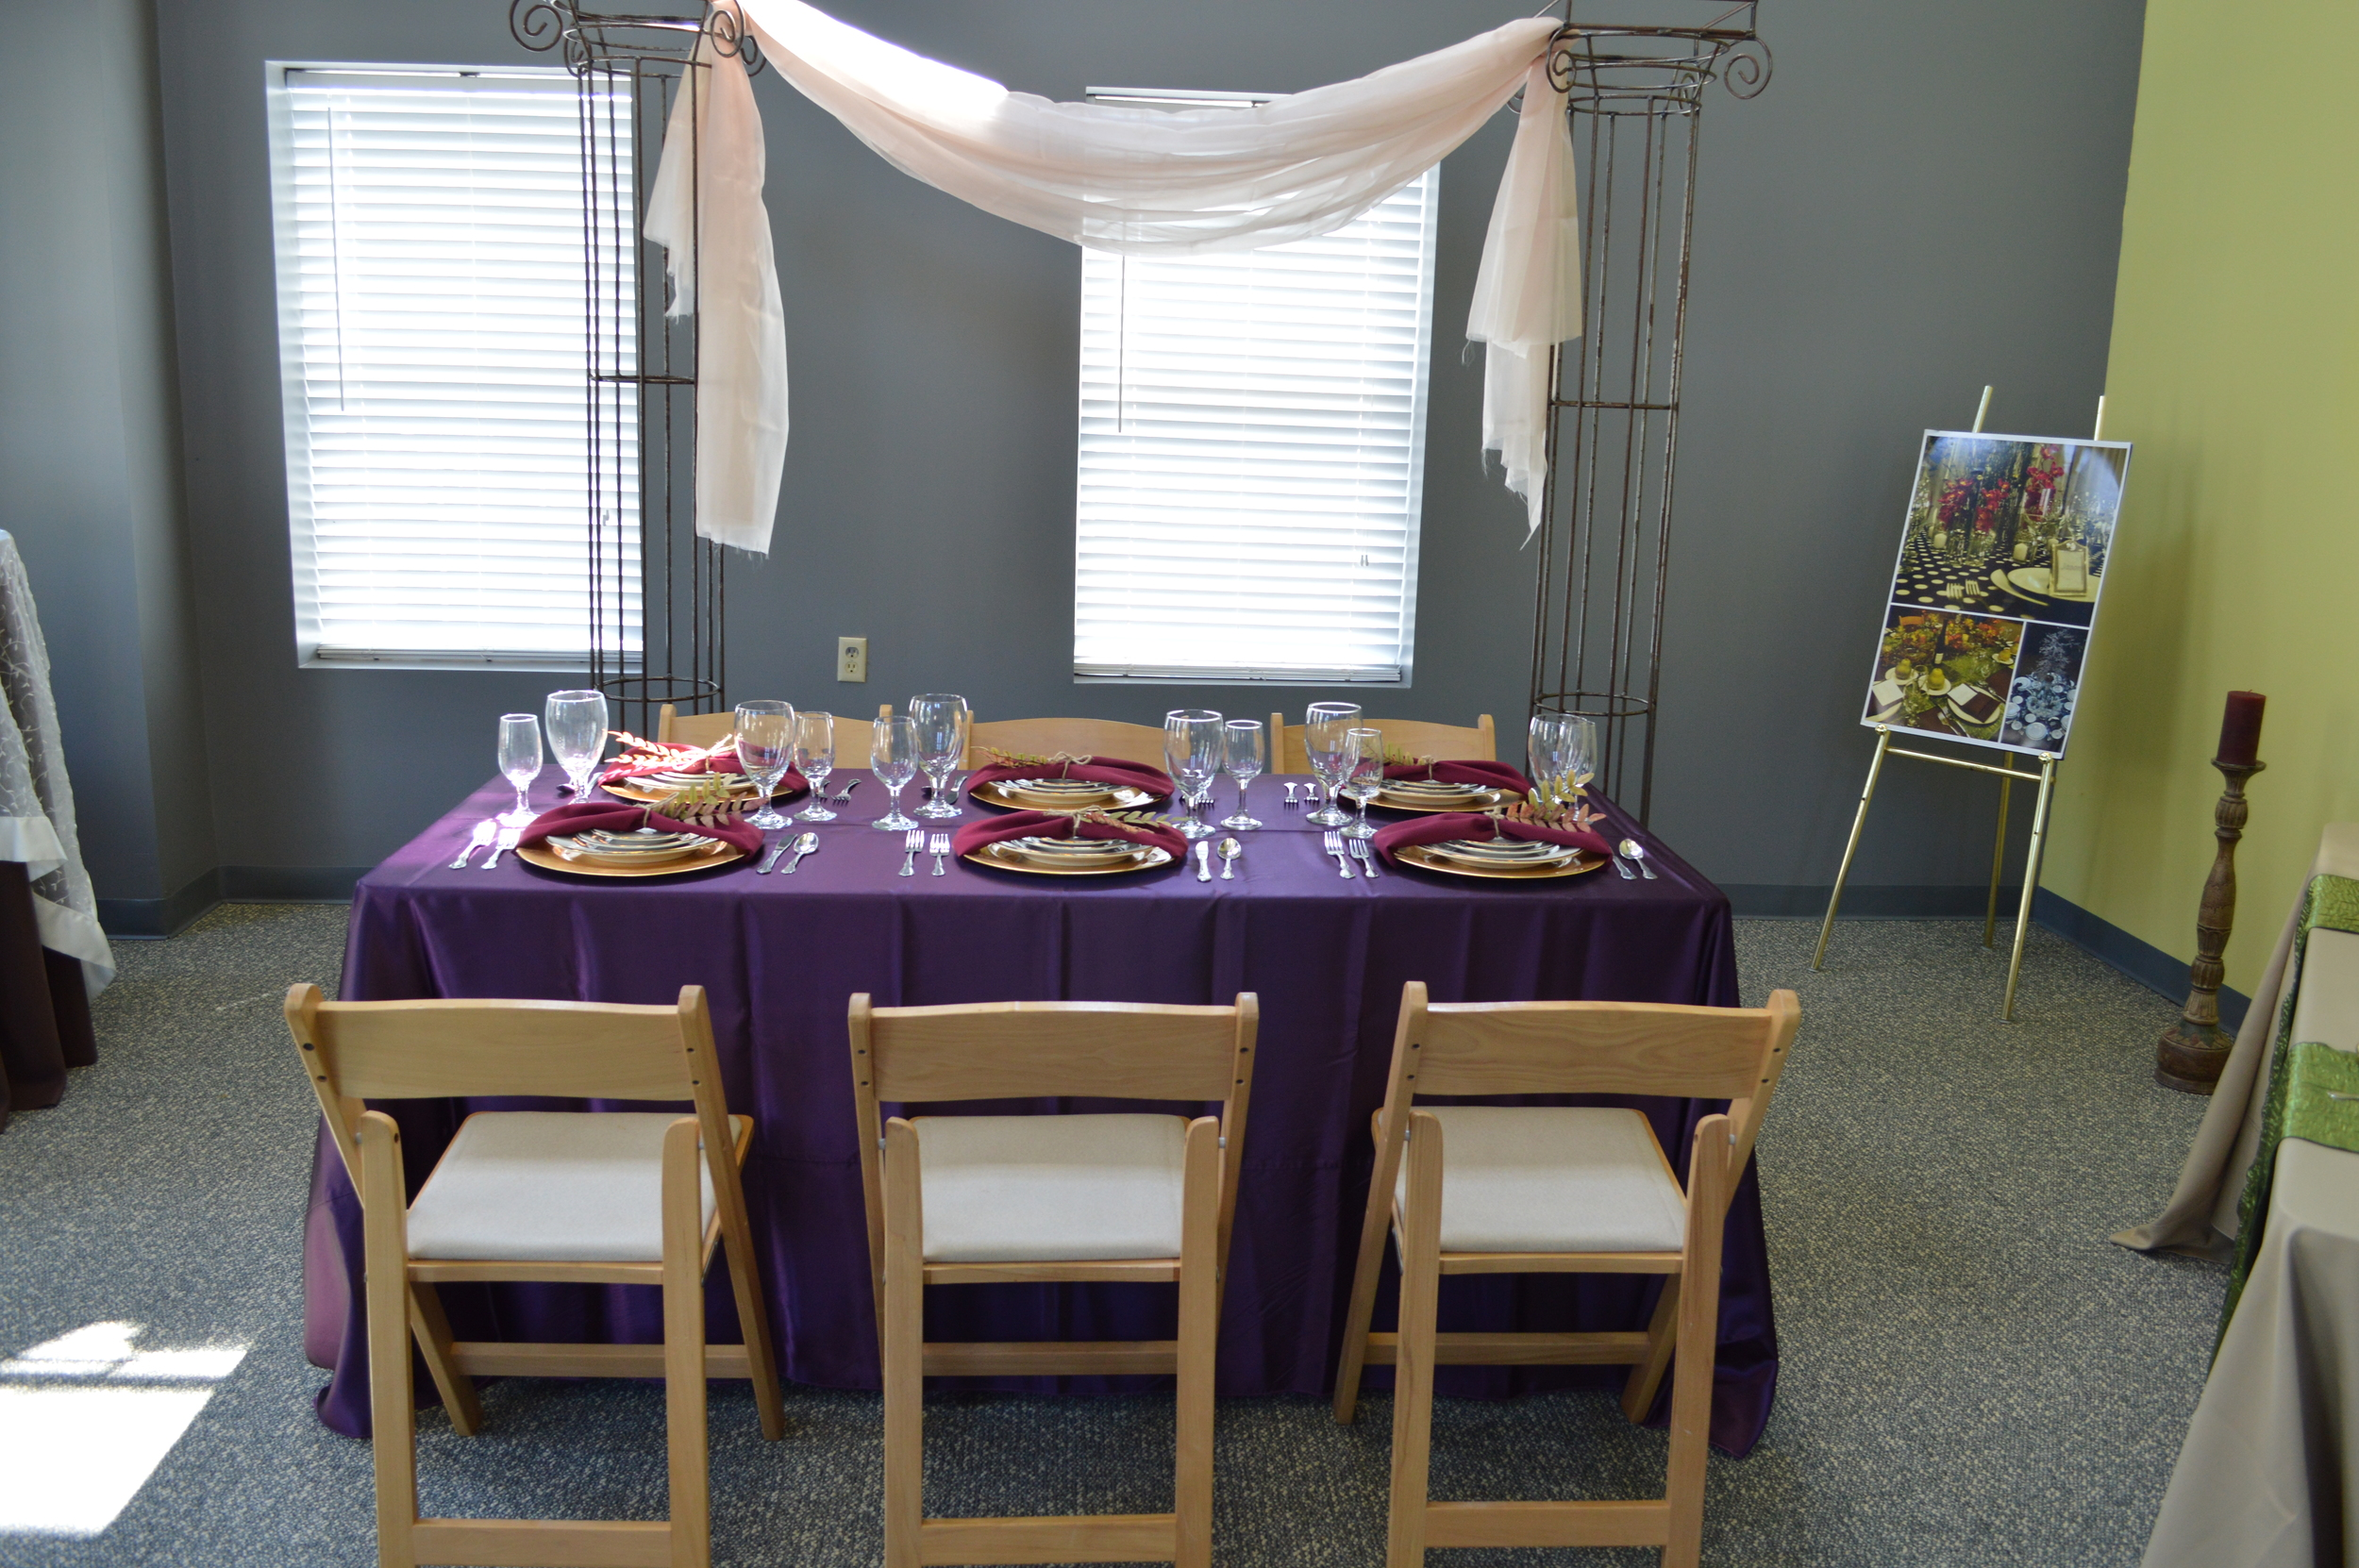 Displayed Greek Column Arch, Natural wood Resin Chairs, 6 ft Table